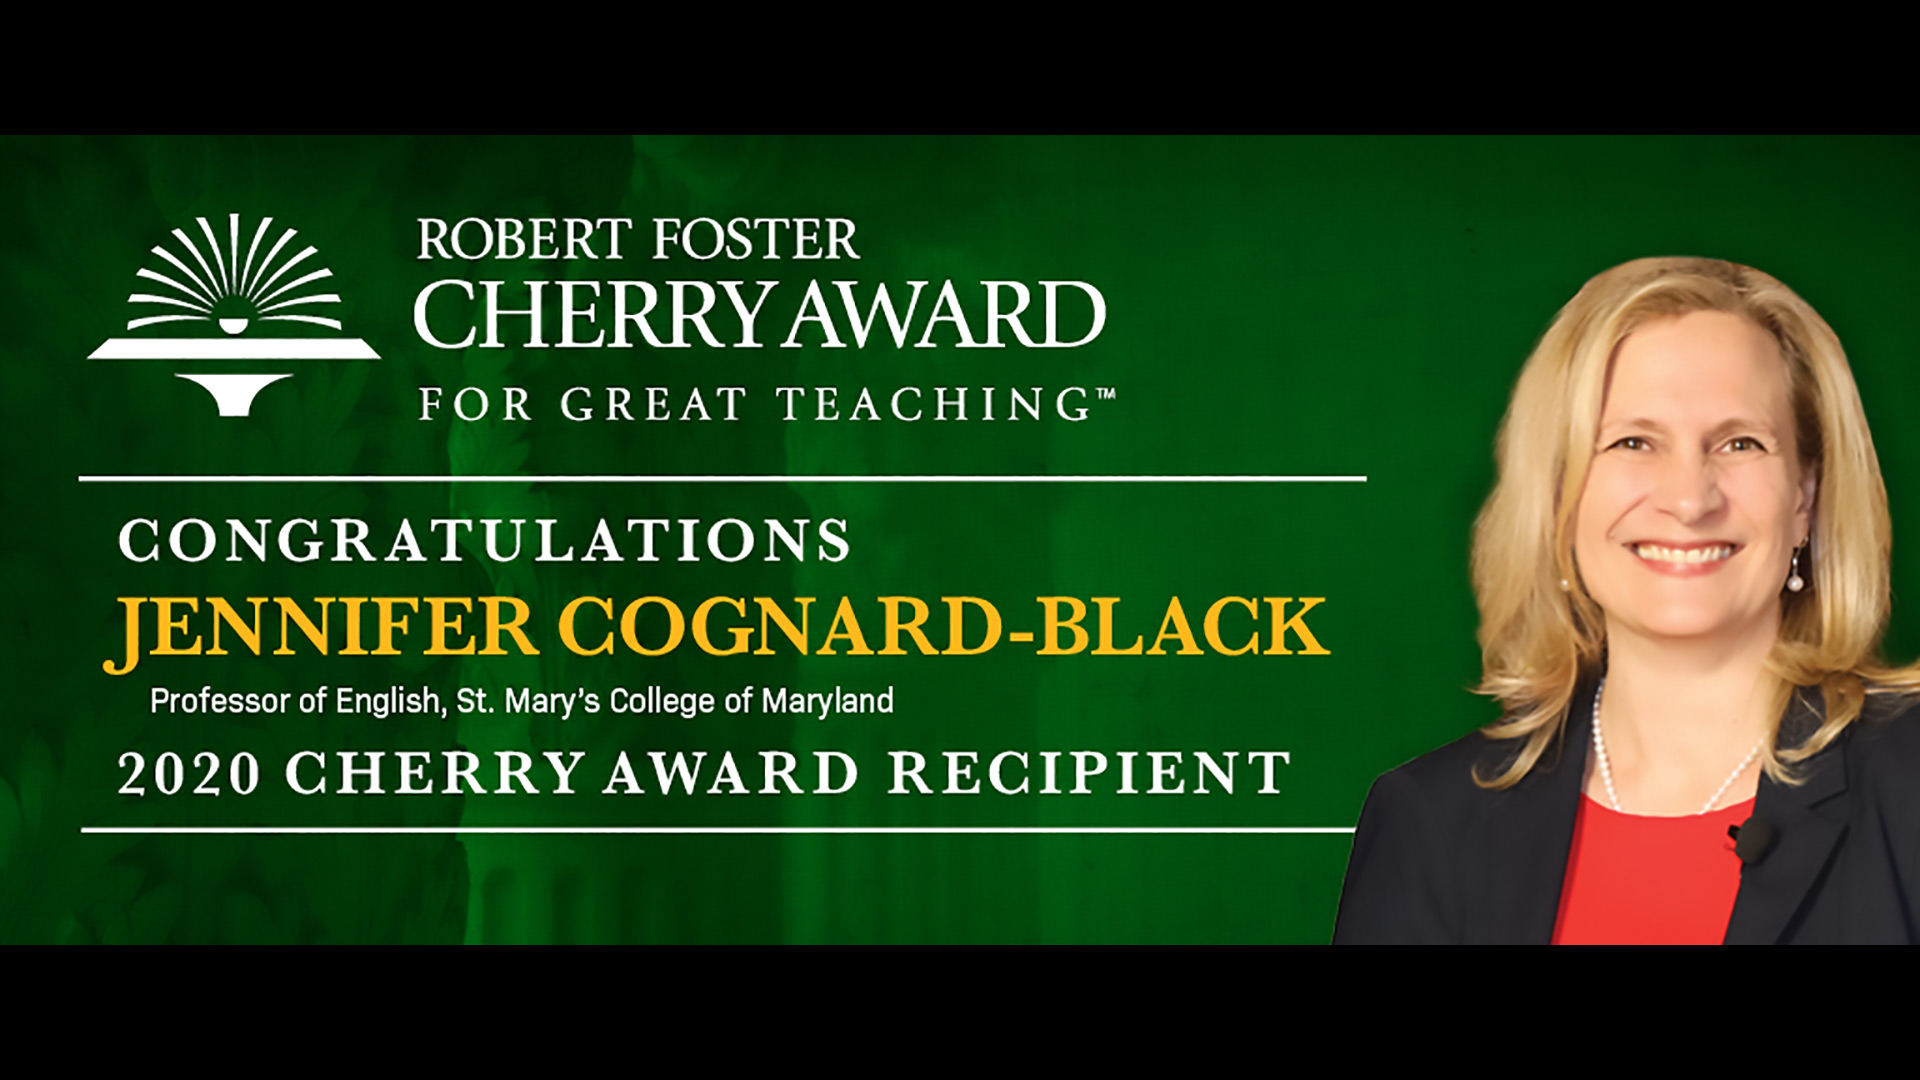 Robert Foster Cherry Award for Great Teaching (TM), Congratulations Jennifer Cognard-Black, Professor of English, St. Mary's College of Maryland, 2020 Cherry Award Recipient